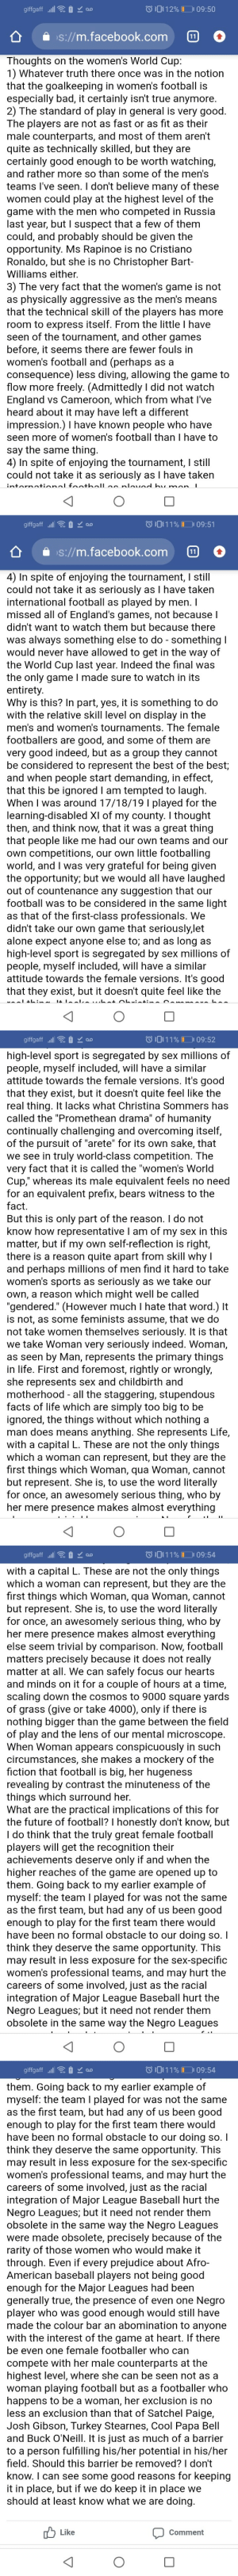 An essay on Women's football by a Uni acquaintance: giffgaff lll  012%D 09:50  Aao  S://m.facebook.com  Thoughts on the women's World Cup:  1) Whatever truth there once was in the notion  that the goalkeeping in women's football is  especially bad, it certainly isn't true anymore.  2) The standard of play in general is very good  The players are not as fast or as fit as their  male counterparts, and most of them aren't  quite as technically skilled, but they are  certainly good enough to be worth watching,  and rather more so than some of the men's  teams I've seen. I don't believe many of these  women could play at the highest level of the  game with the men who competed in Russia  last year, but I suspect that a few of them  could, and probably should be given the  opportunity. Ms Rapinoe is no Cristiano  Ronaldo, but she is no Christopher Bart  Williams either.  3) The very fact that the women's game is not  as physically aggressive as the men's means  that the technical skill of the players has more  room to express itself. From the little I have  seen of the tournament, and other games  before, it seems there are fewer fouls in  women's football and (perhaps as a  consequence) less diving, allowing the game to  flow more freely. (Admittedly I did not watch  England vs Cameroon, which from what I've  heard about it may have left a different  impression.) I have known people who have  seen more of women's football than I have to  say the same thing.  4) In spite of enjoying the tournament, I still  could not take it as seriously as I have taken  intarnational fonthllon nlovod h monI  giffgaff Oa  11%I09:51  1  S://m.facebook.com  4) In spite of enjoying the tournament, I still  could not take it as seriously as I have taken  international football as played by men. I  missed all of England's games, not becausel  didn't want to watch them but because there  was always something else to do - something I  would never have allowed to get in the way of  the World Cup 